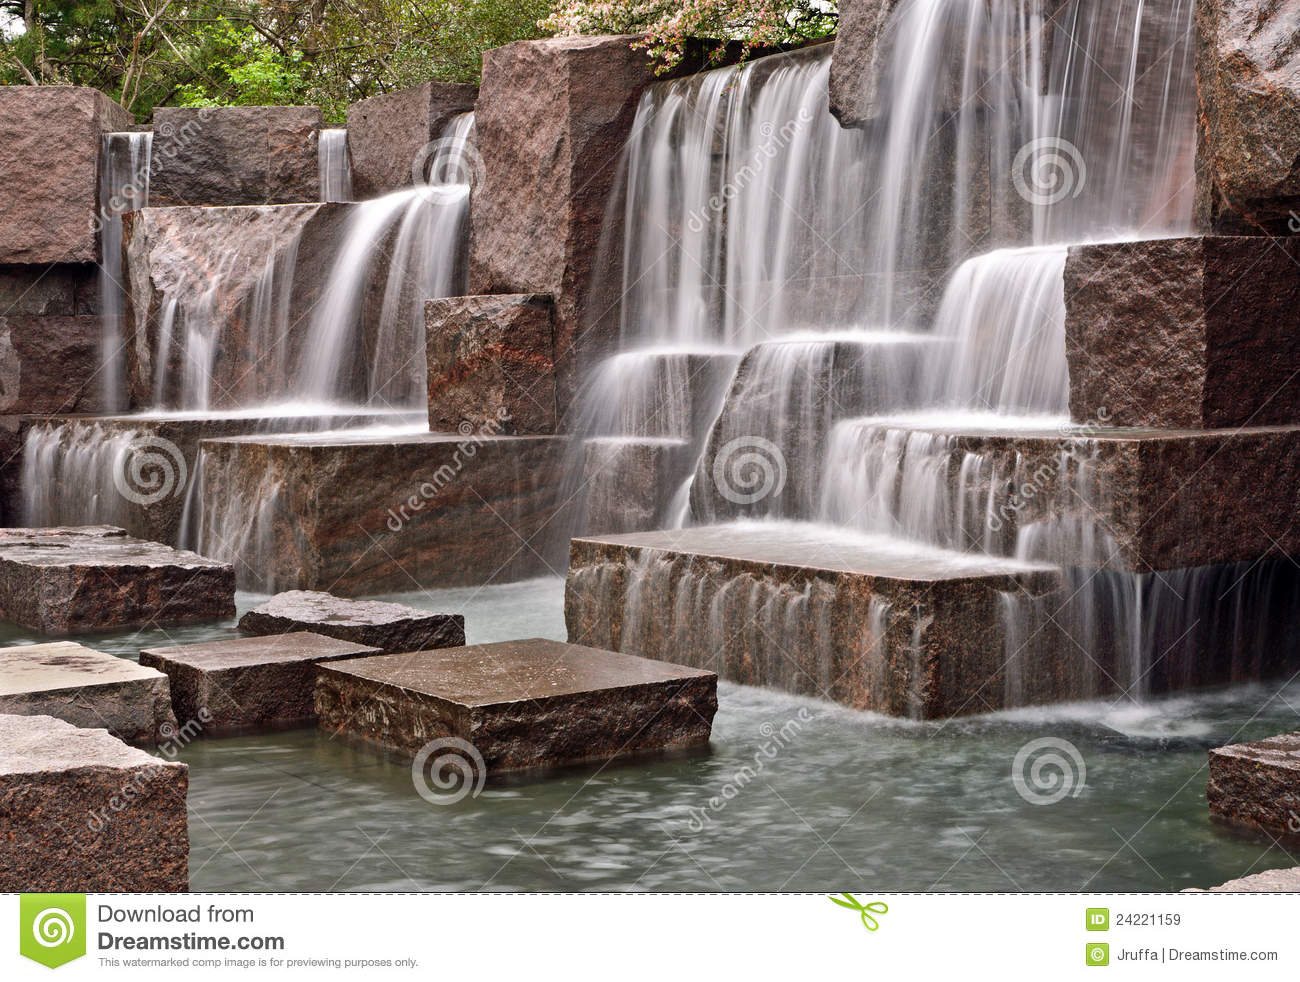 Cascading Waterfalls at FDR Memorial